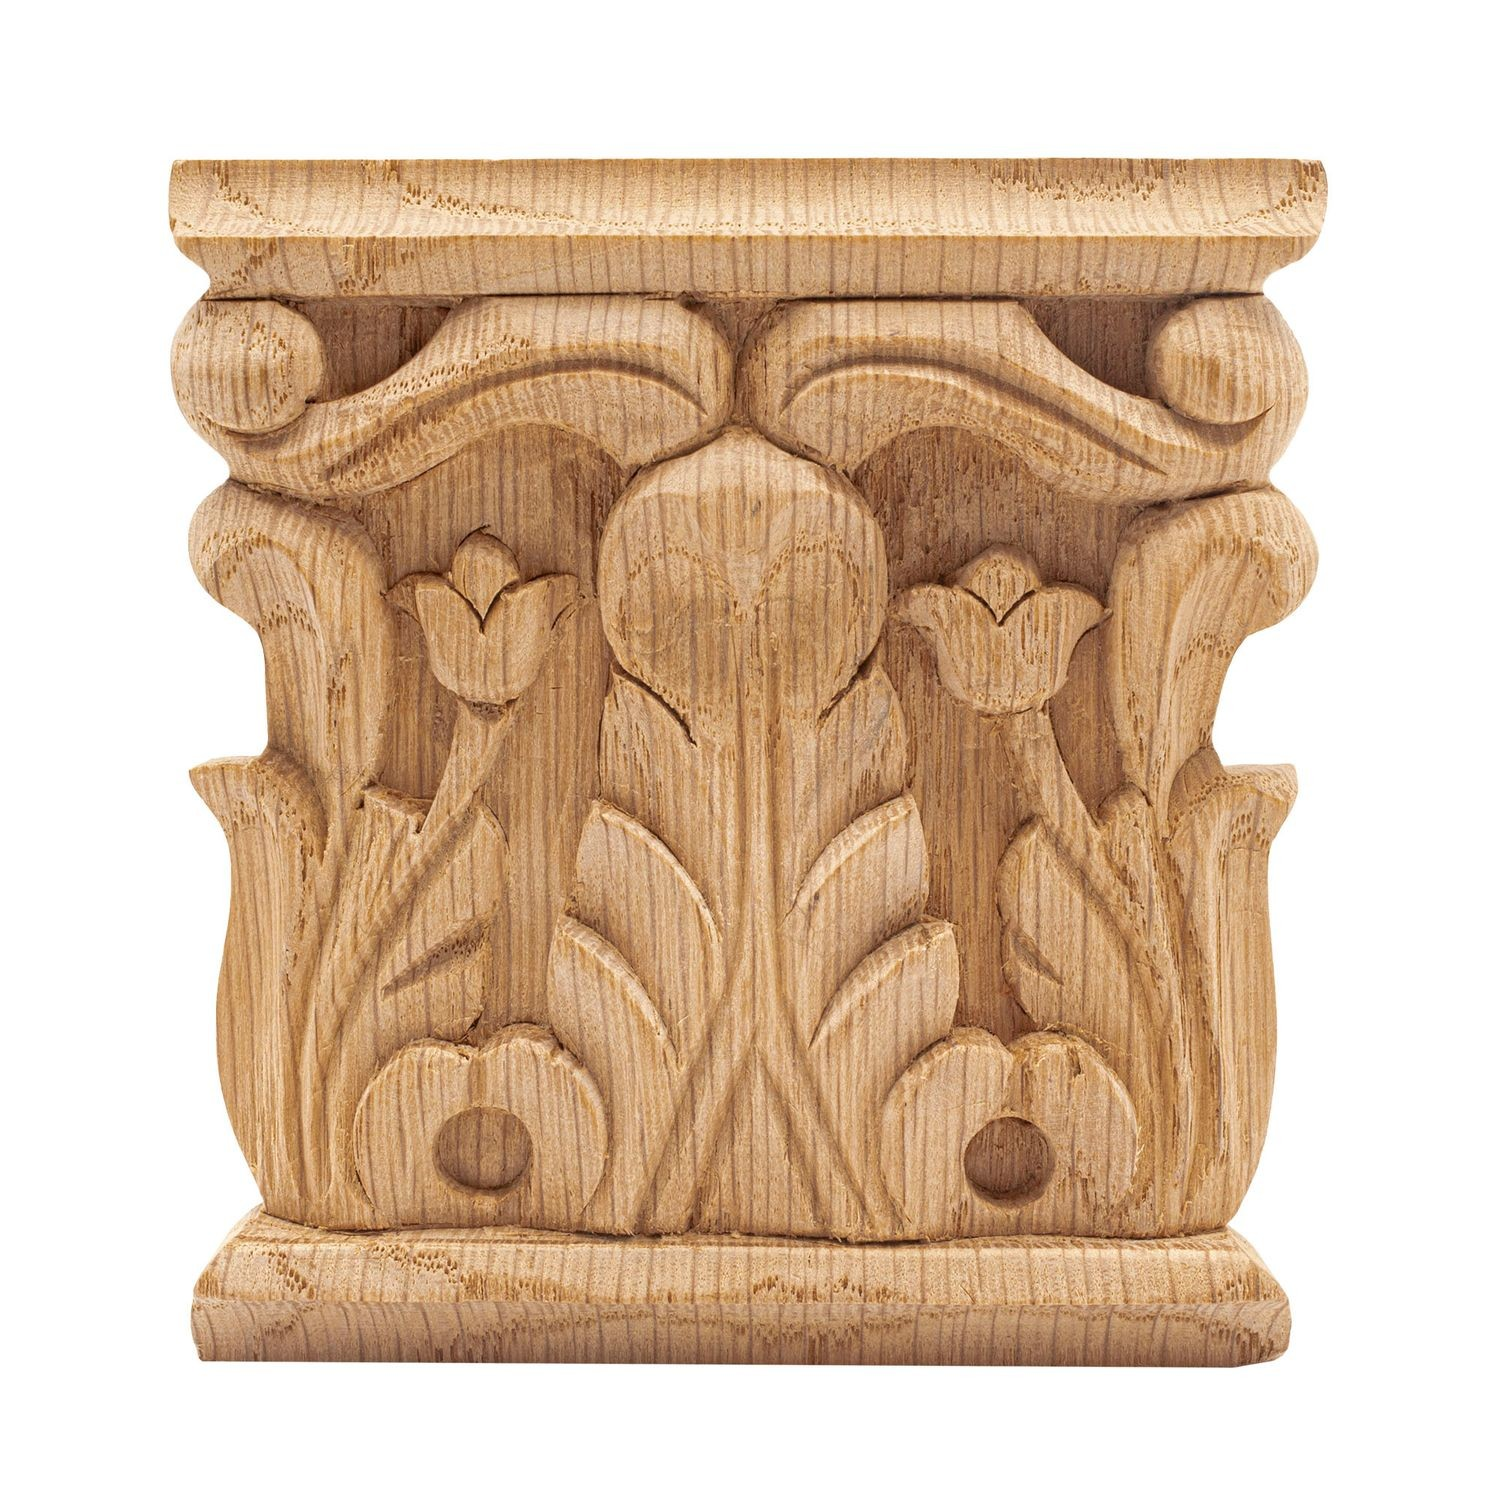 IWW25-L-OAK 24-3//8 x 5-1//4 Red Oak Hand-Carved Ornamental Grape Leaf Hardwood Applique